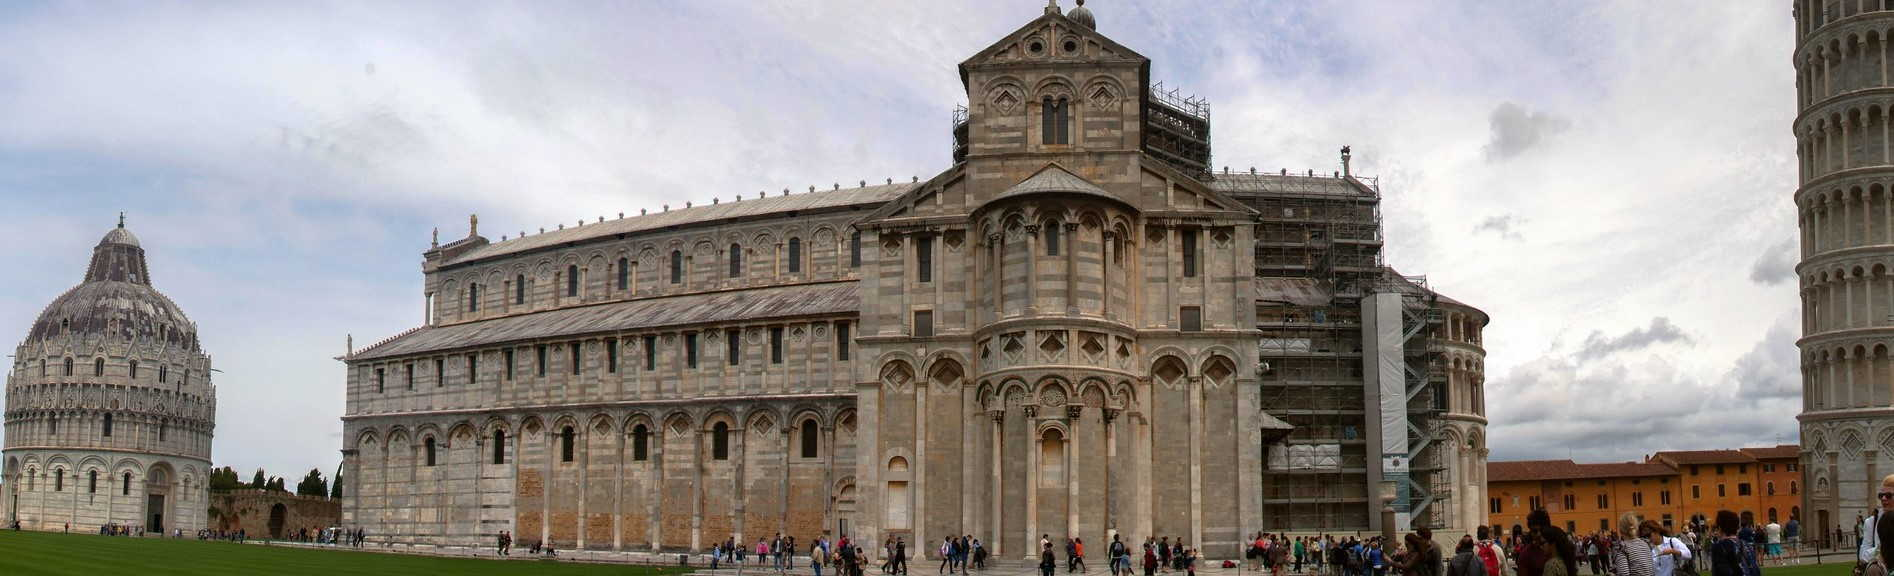 The Best Attractions to see in Pisa